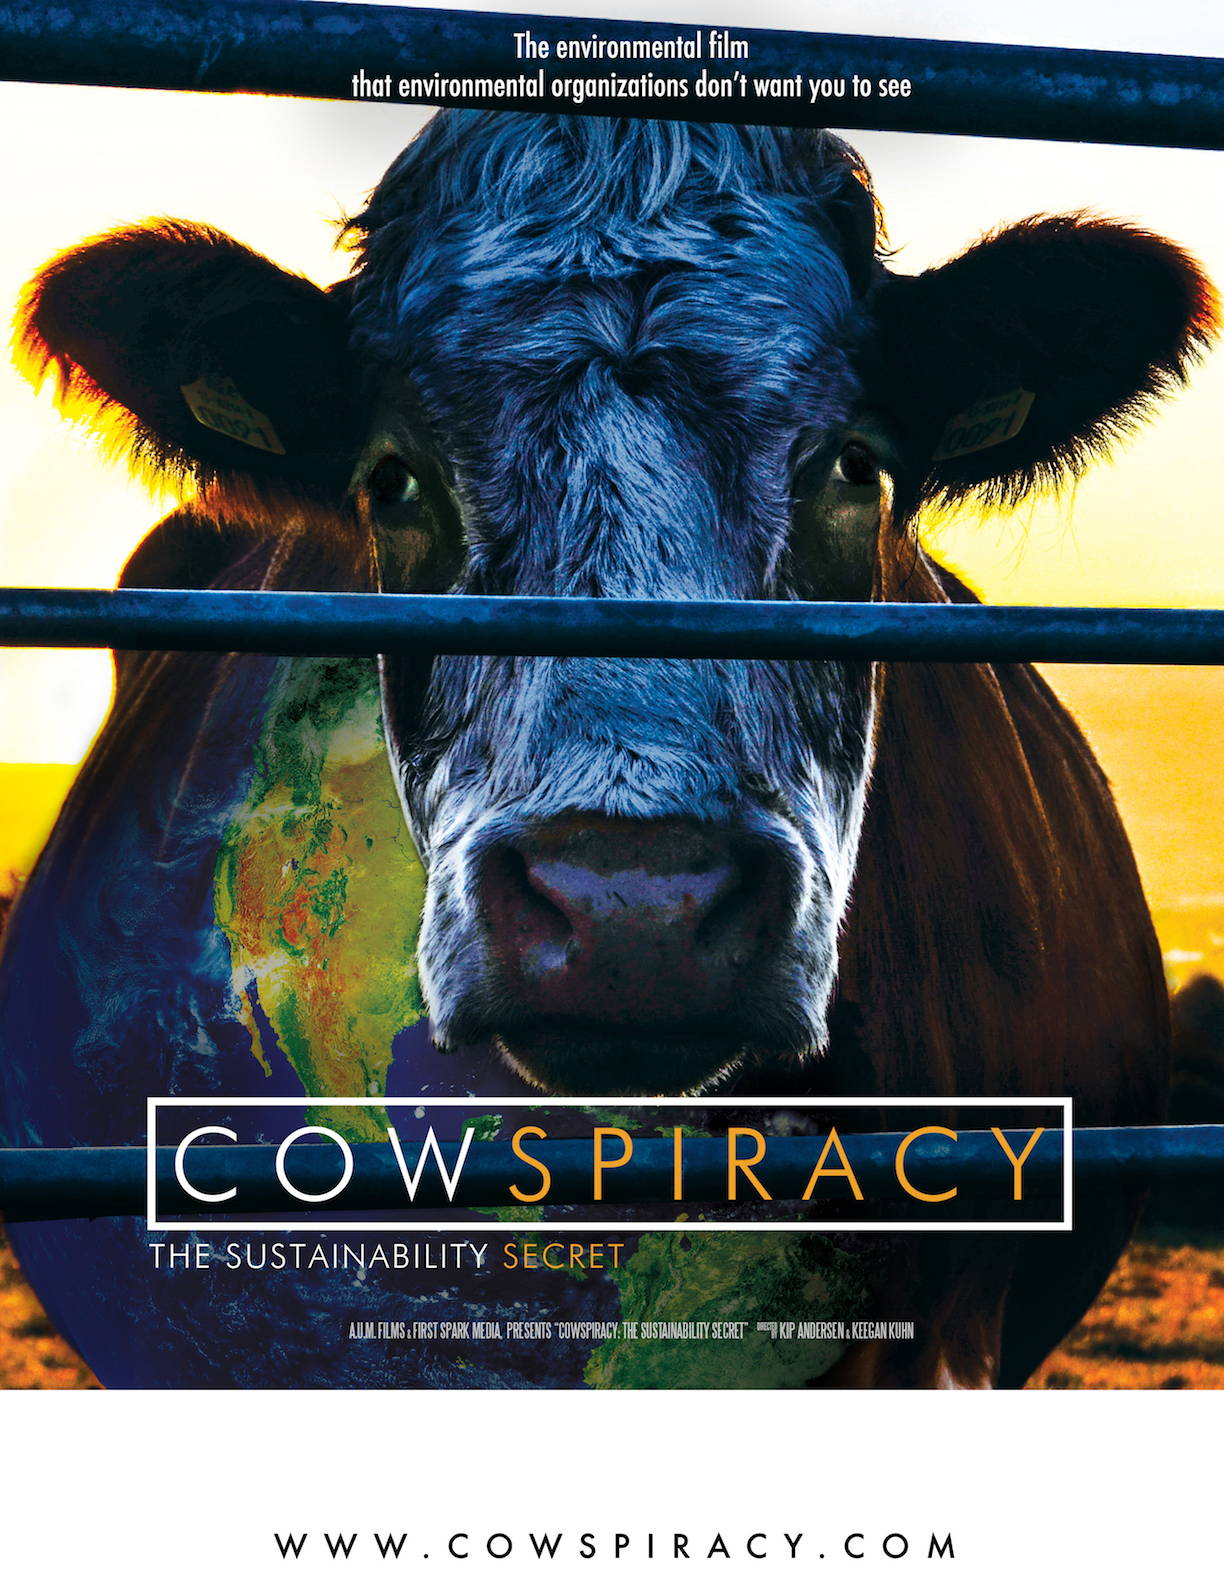 Poster of 'the Cowspiracy' that exposes the impact of large scale factory farming.